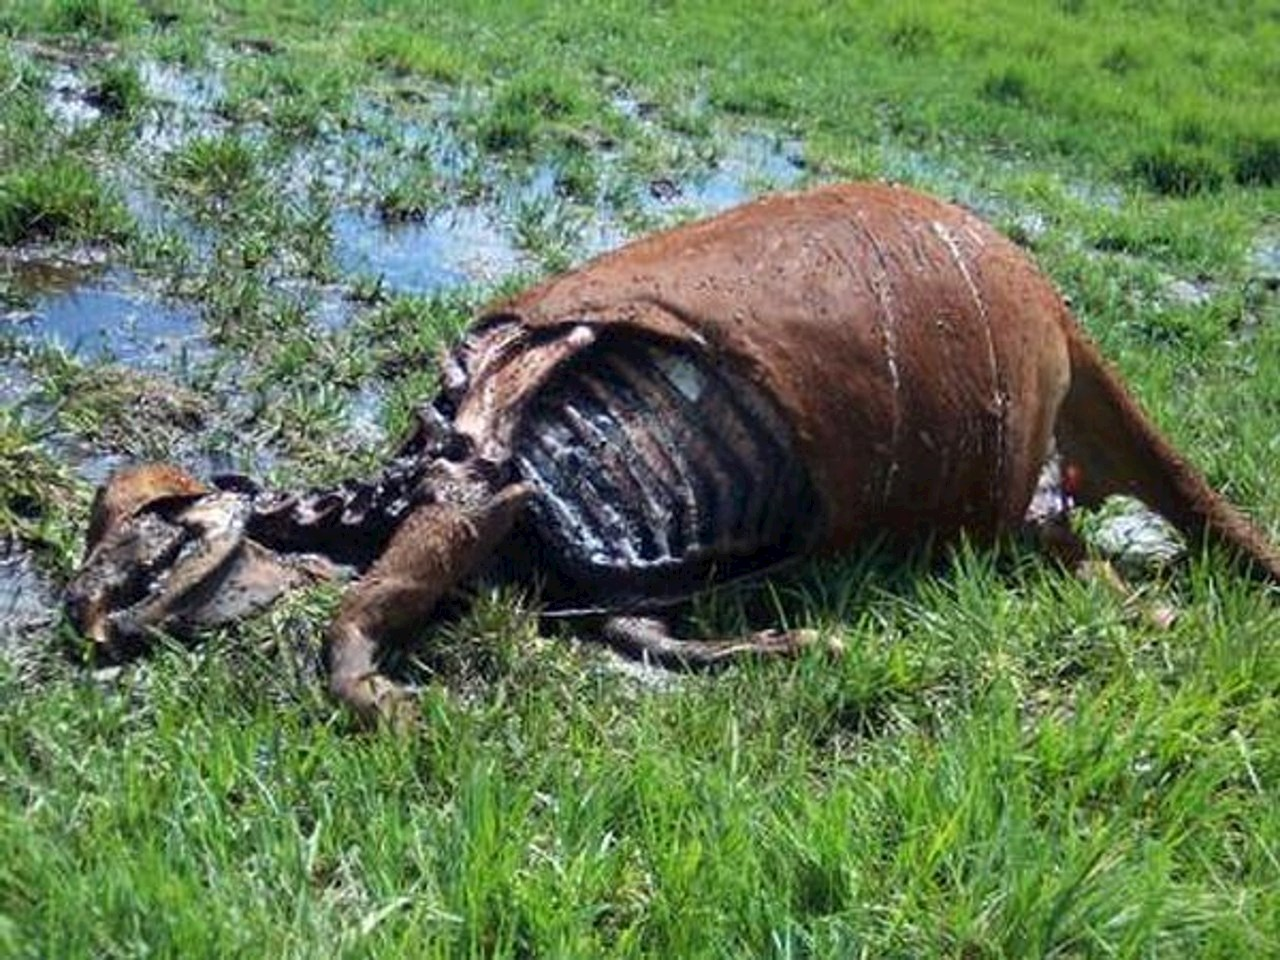 The remains of a calf killed on Manuel Sanchez's ranch